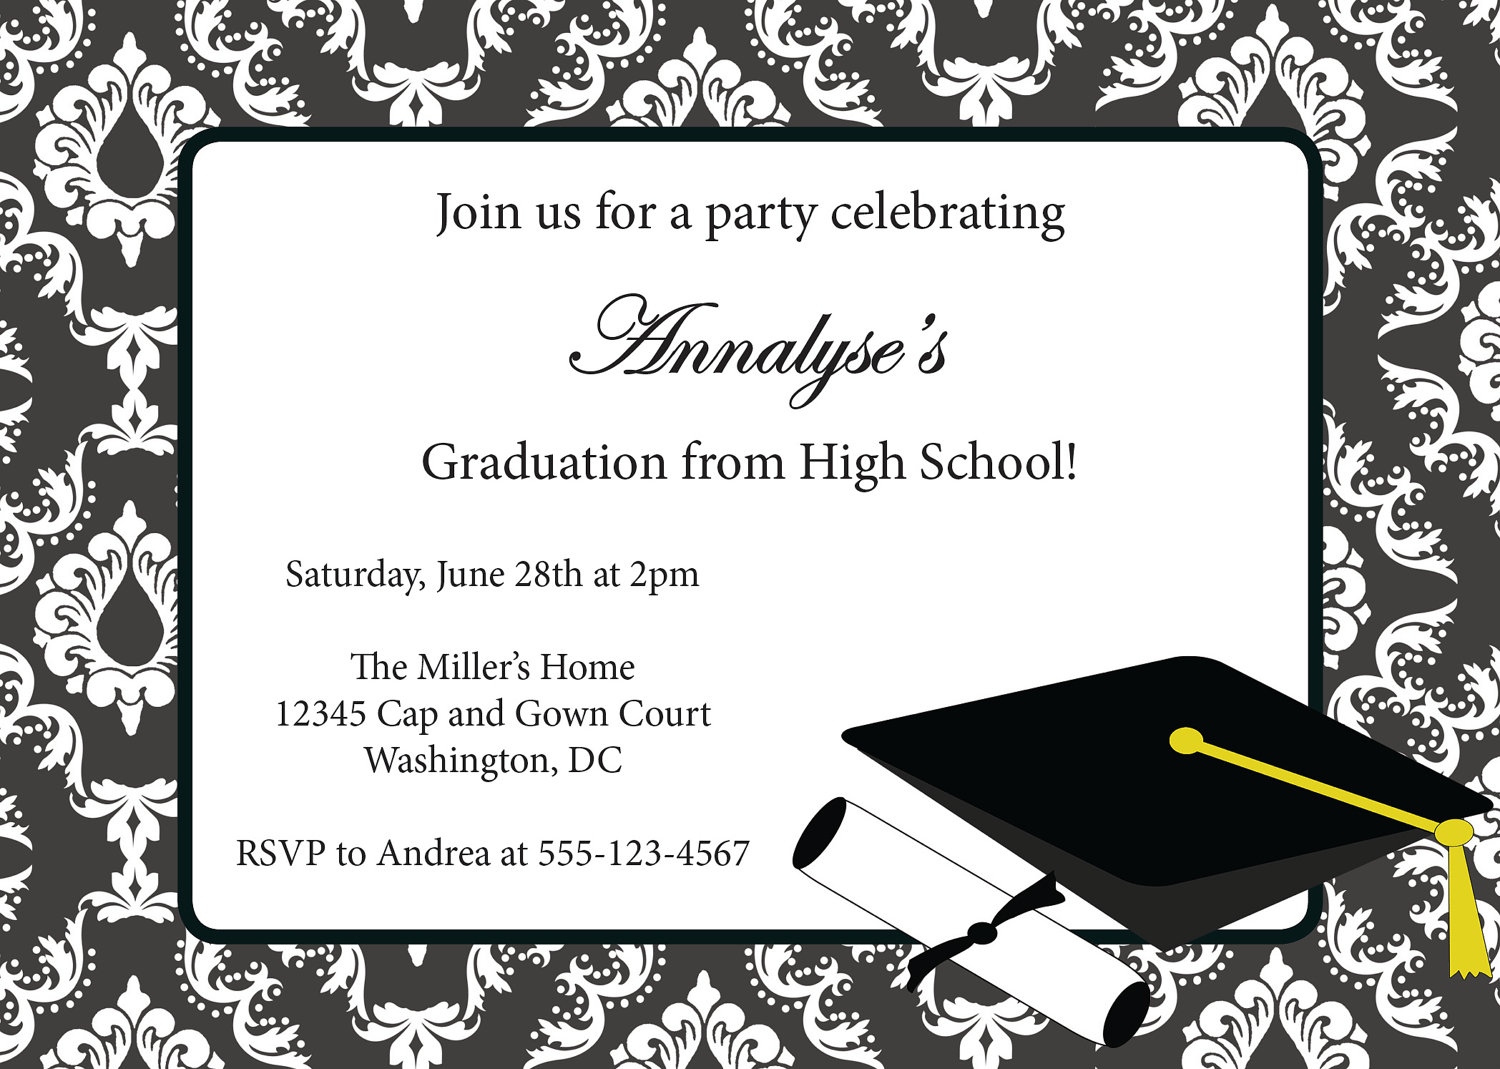 Free Printable Graduation Party Invitation Templates - Hashtag Bg - Free Printable Graduation Party Invitations 2014